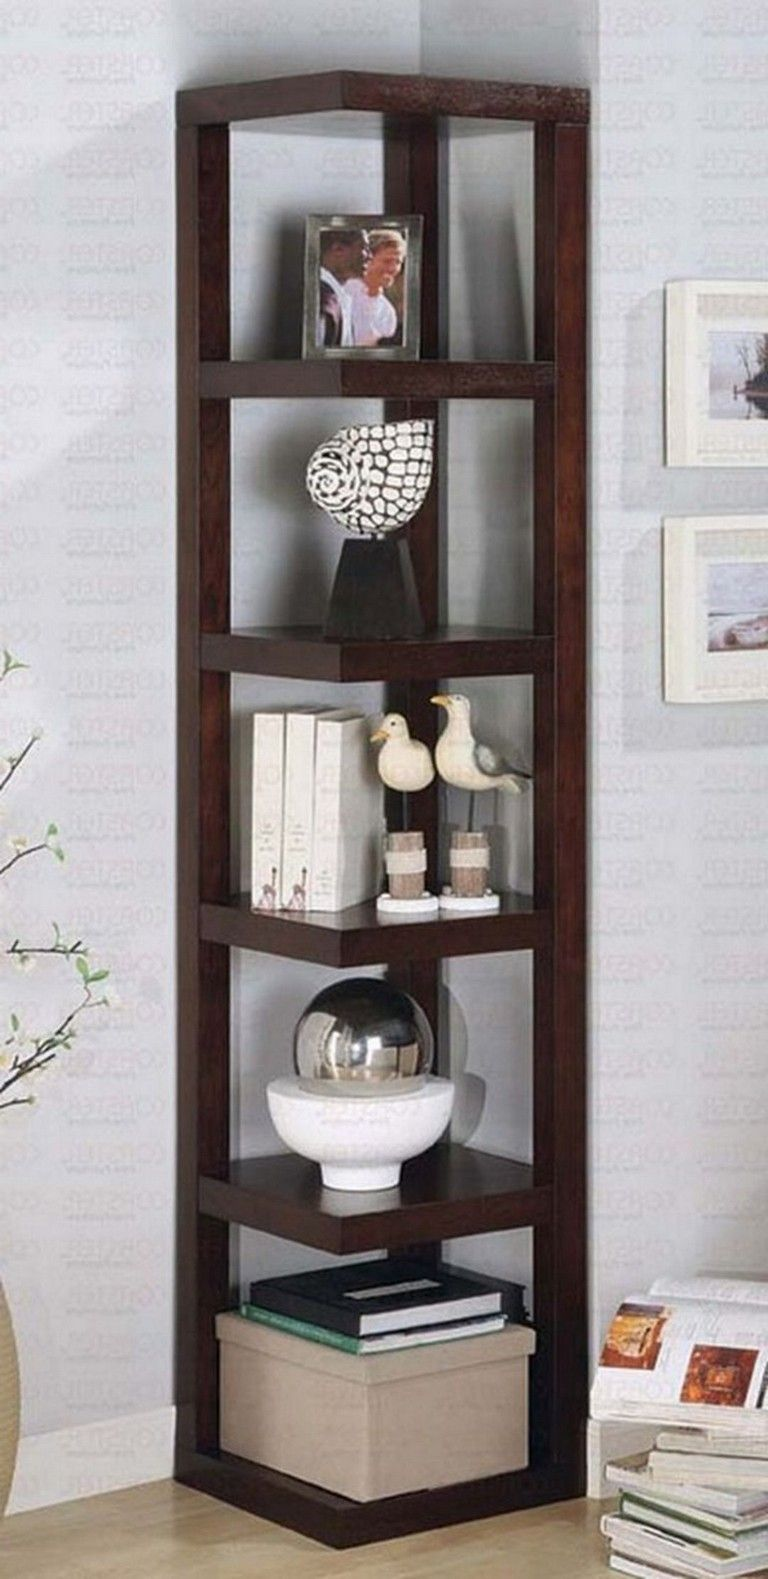 23 Marvelous Corner Shelves Design Ideas For Your Living